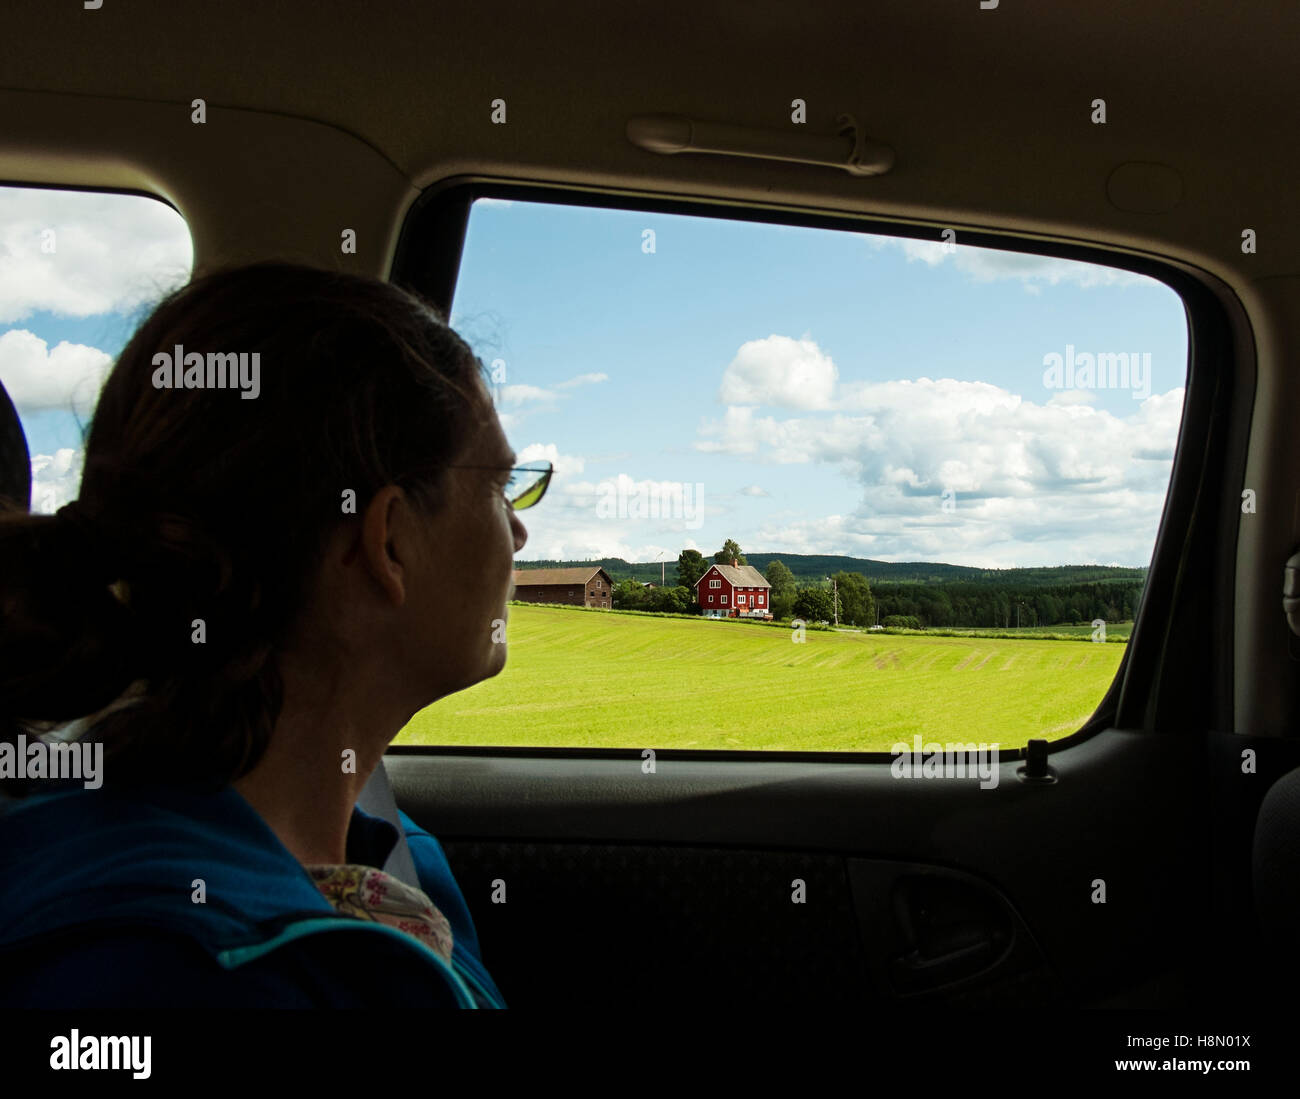 Mature woman in car observing country landscape - Stock Image